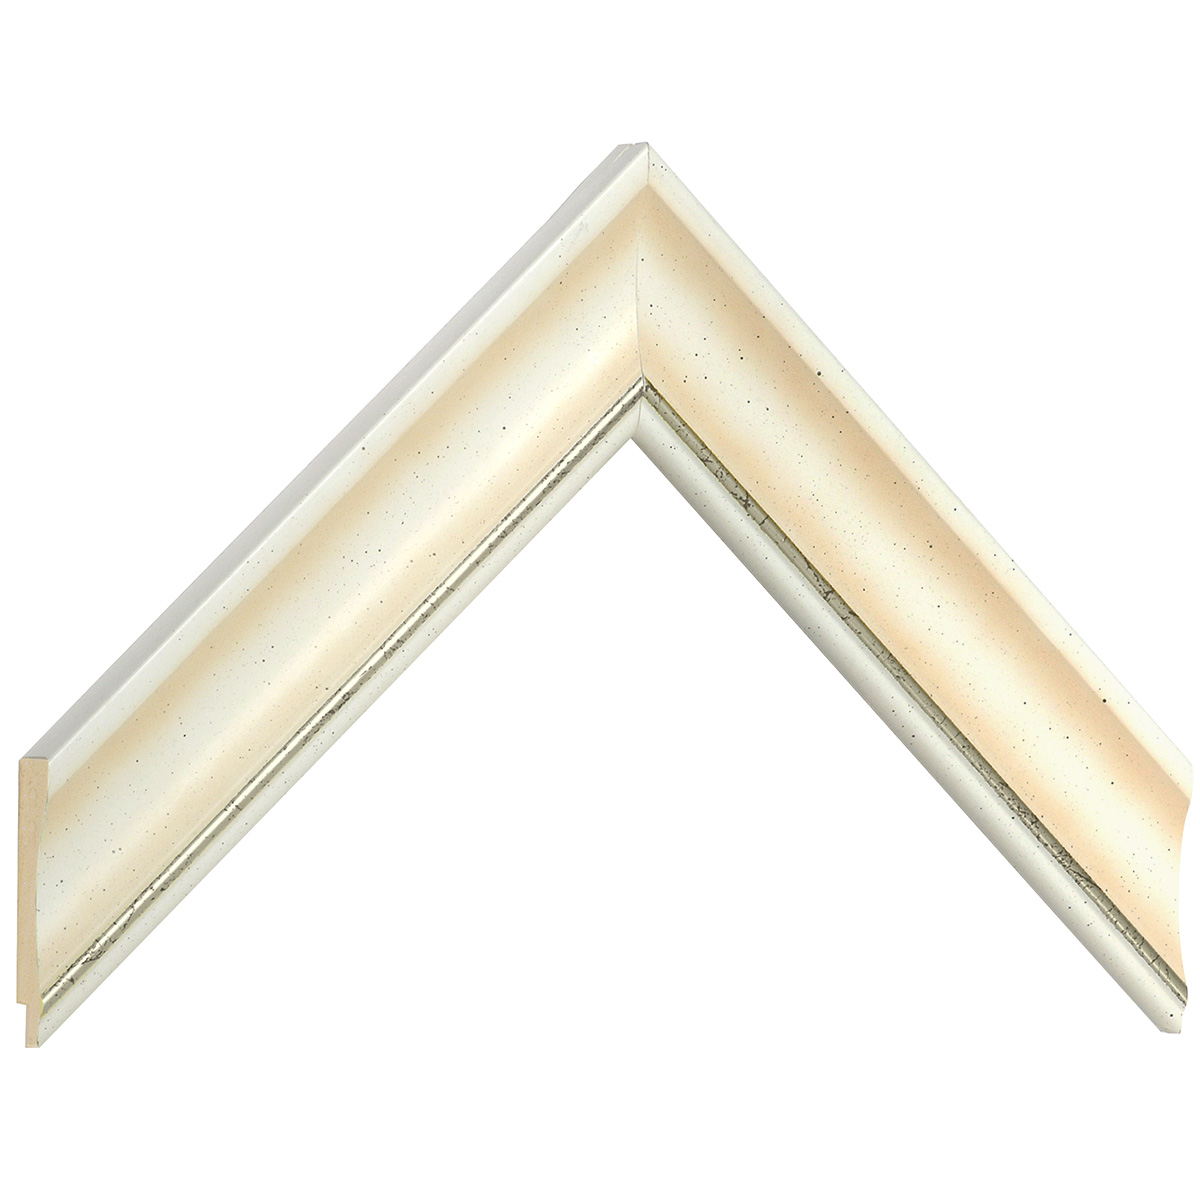 Liner ayous 35mm - convex shape, cream coloured, silver edge